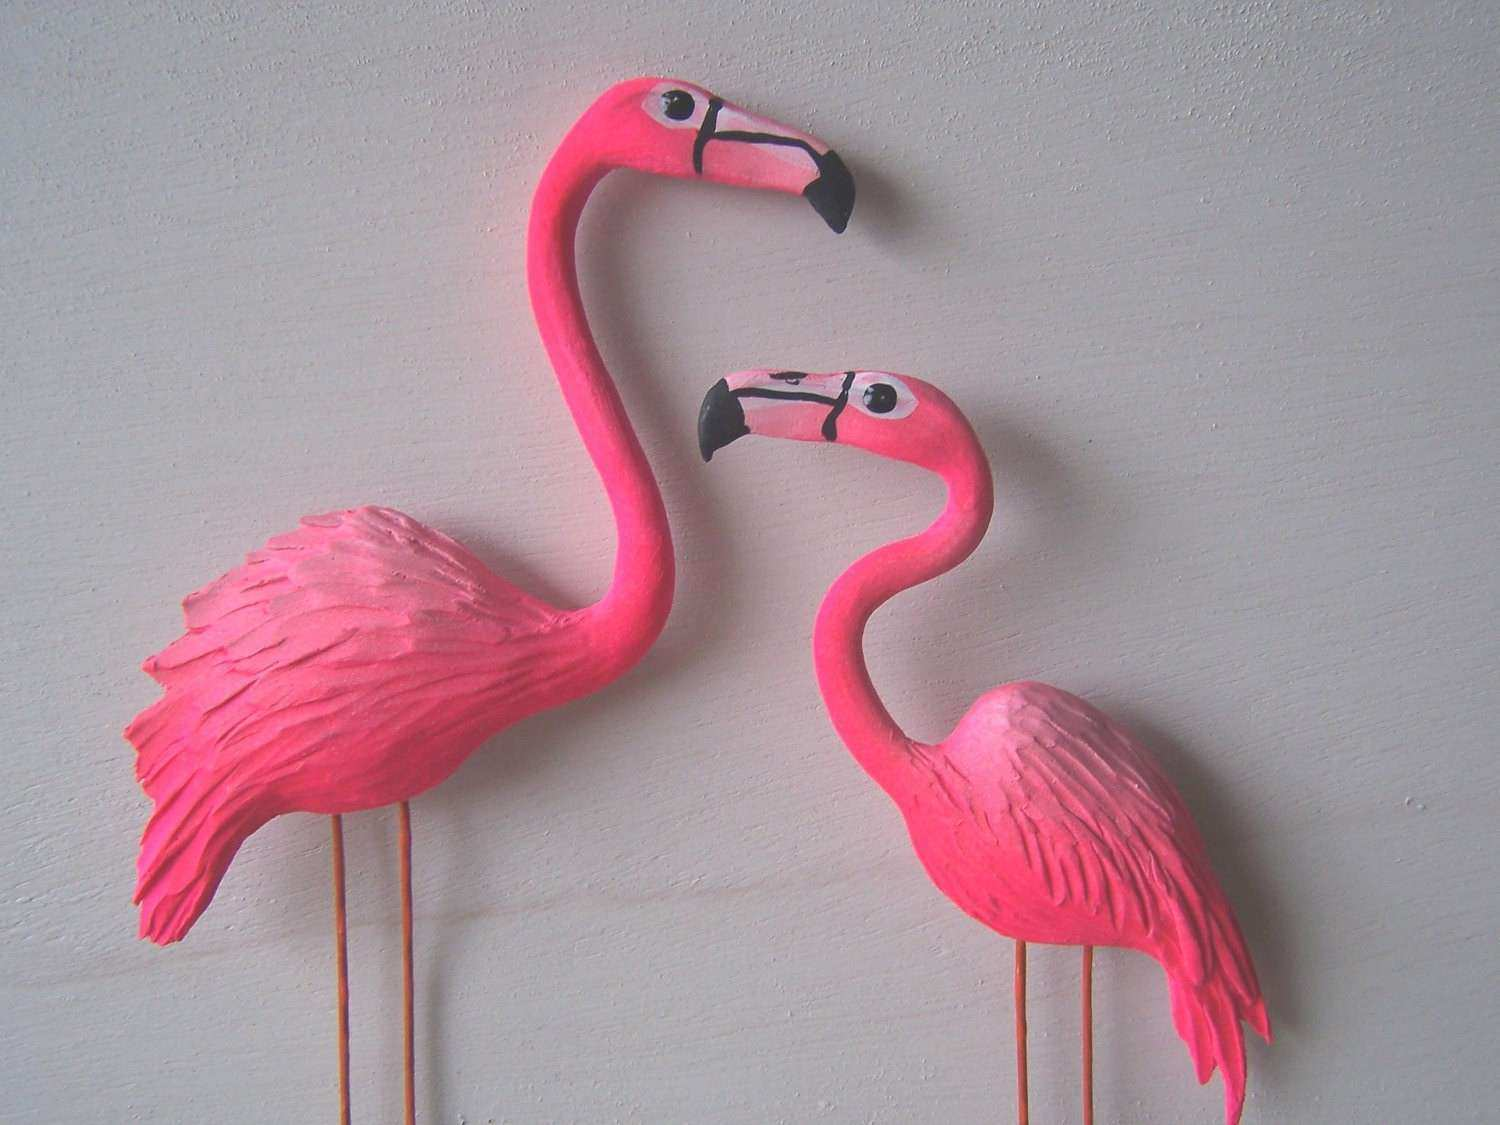 Pink flamingo art sculpture wall decor by artistJP on Etsy